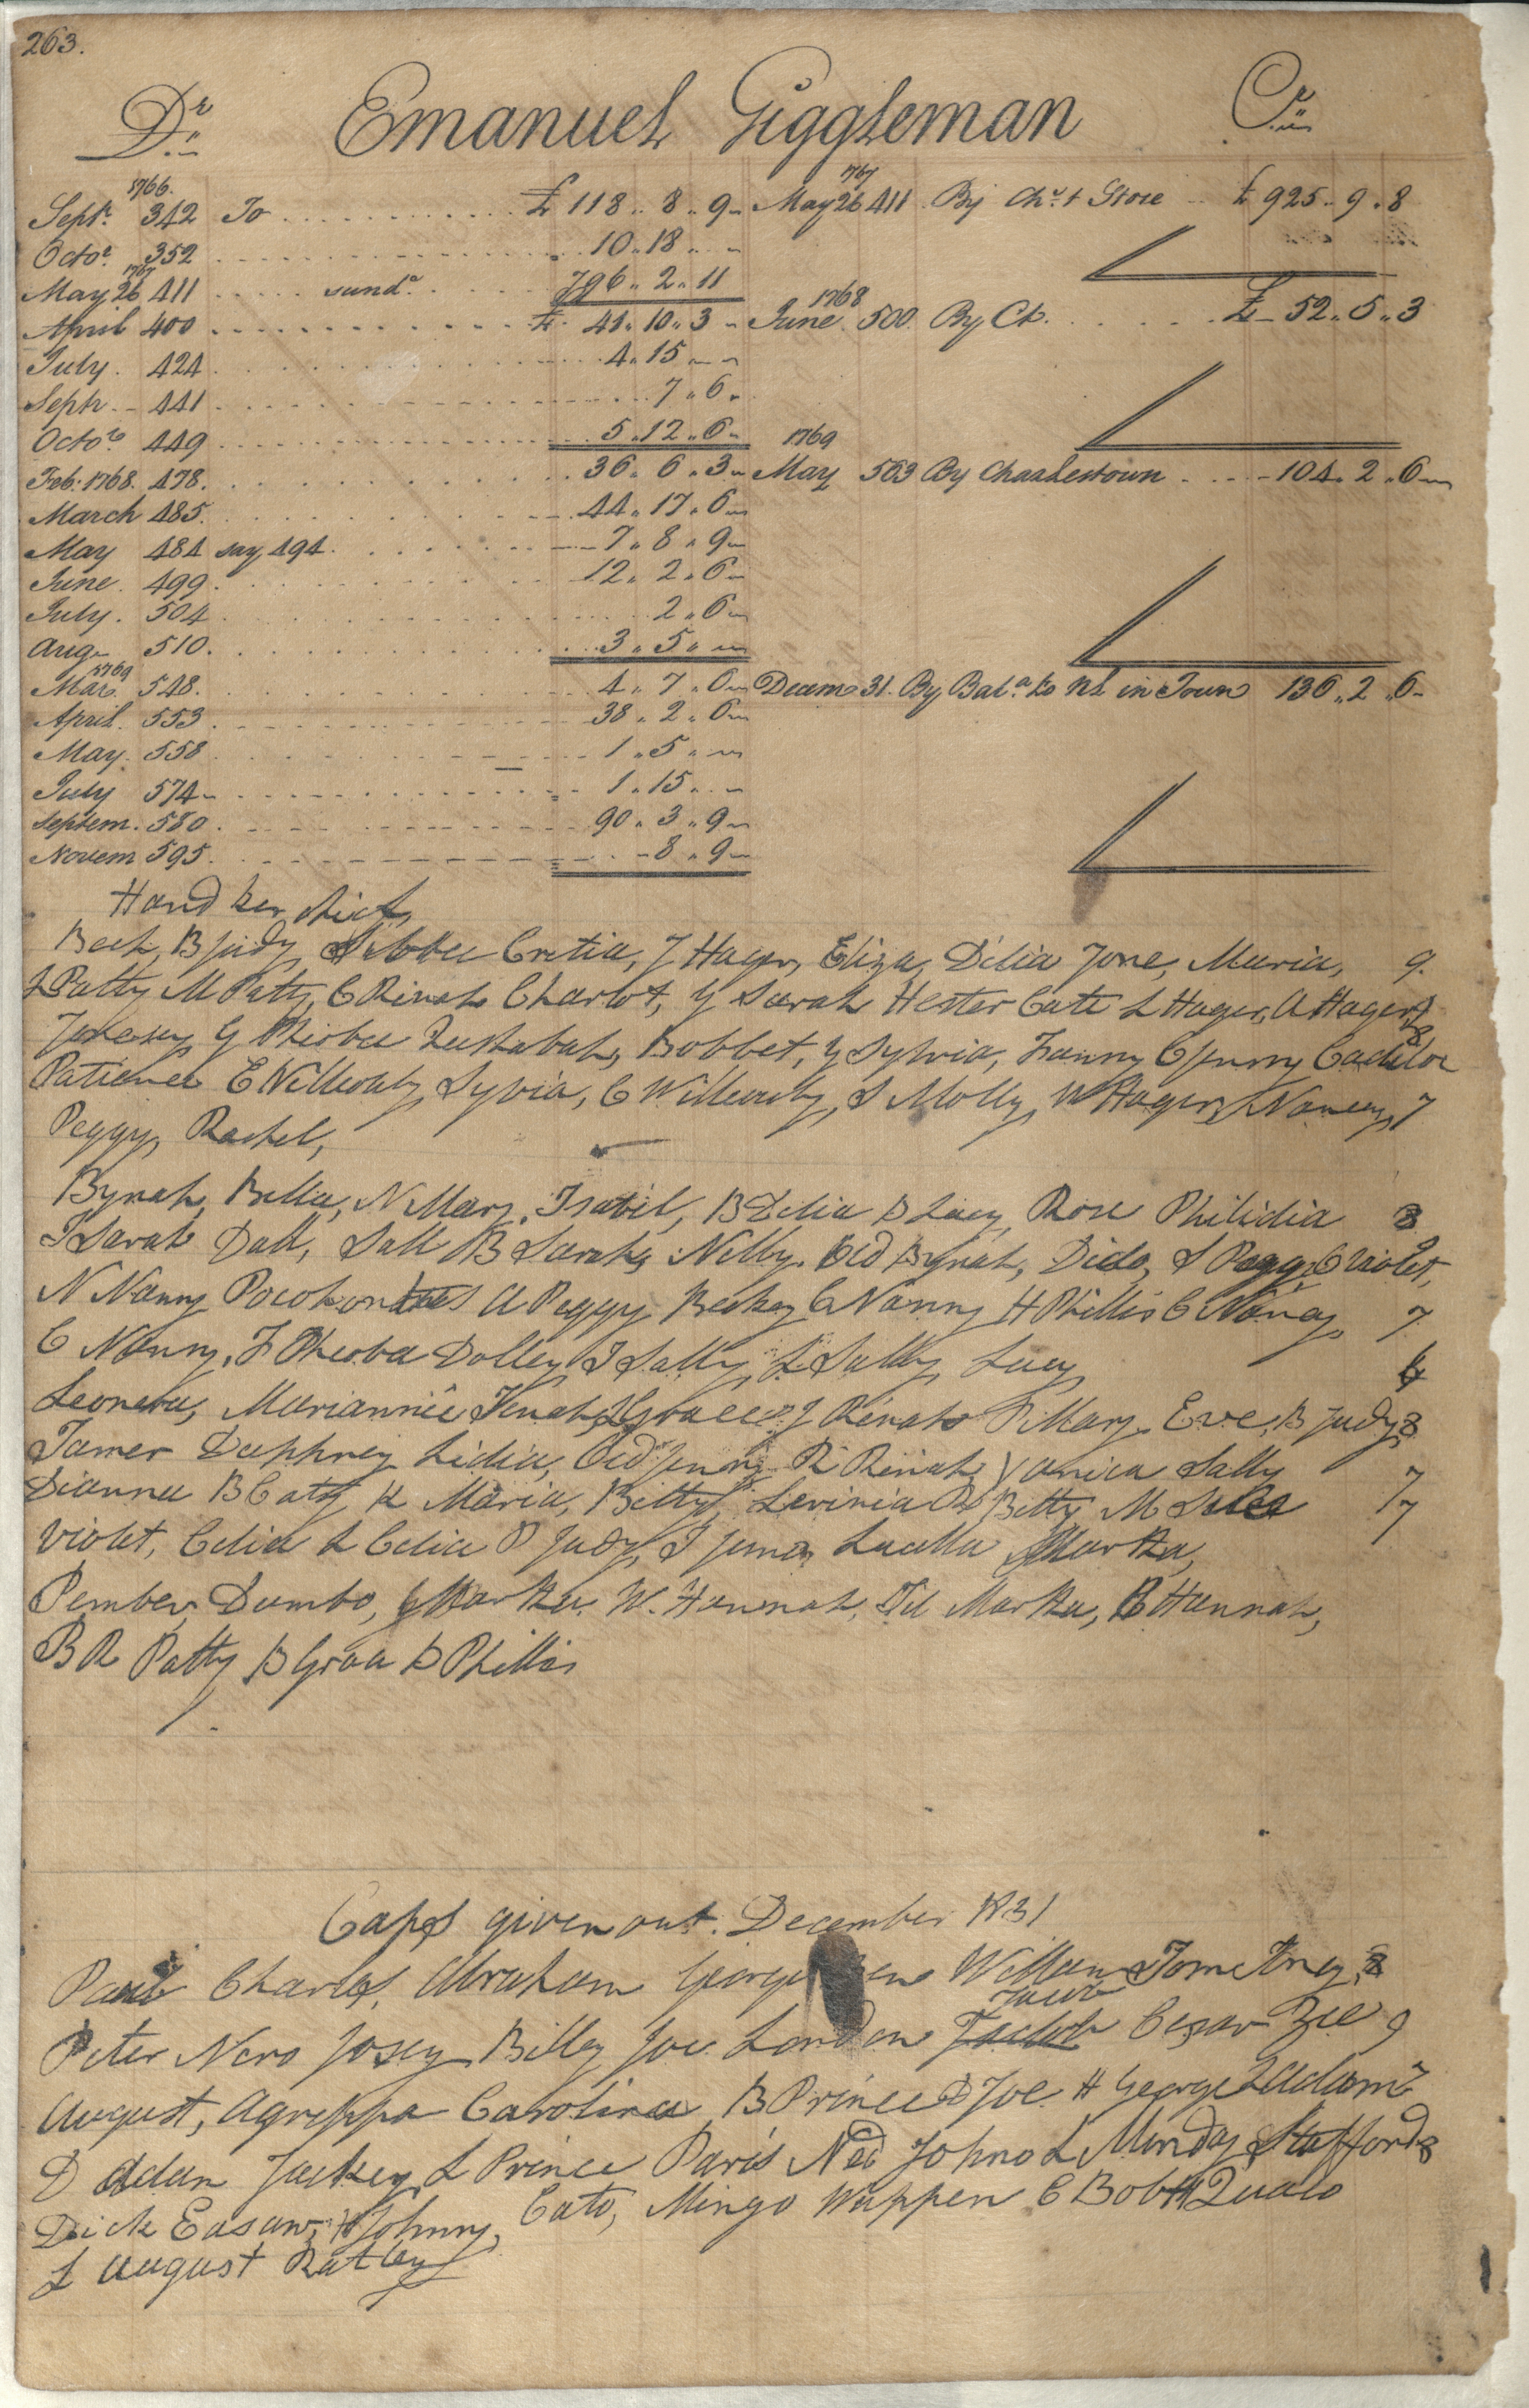 Plowden Weston's Business Ledger, page 263